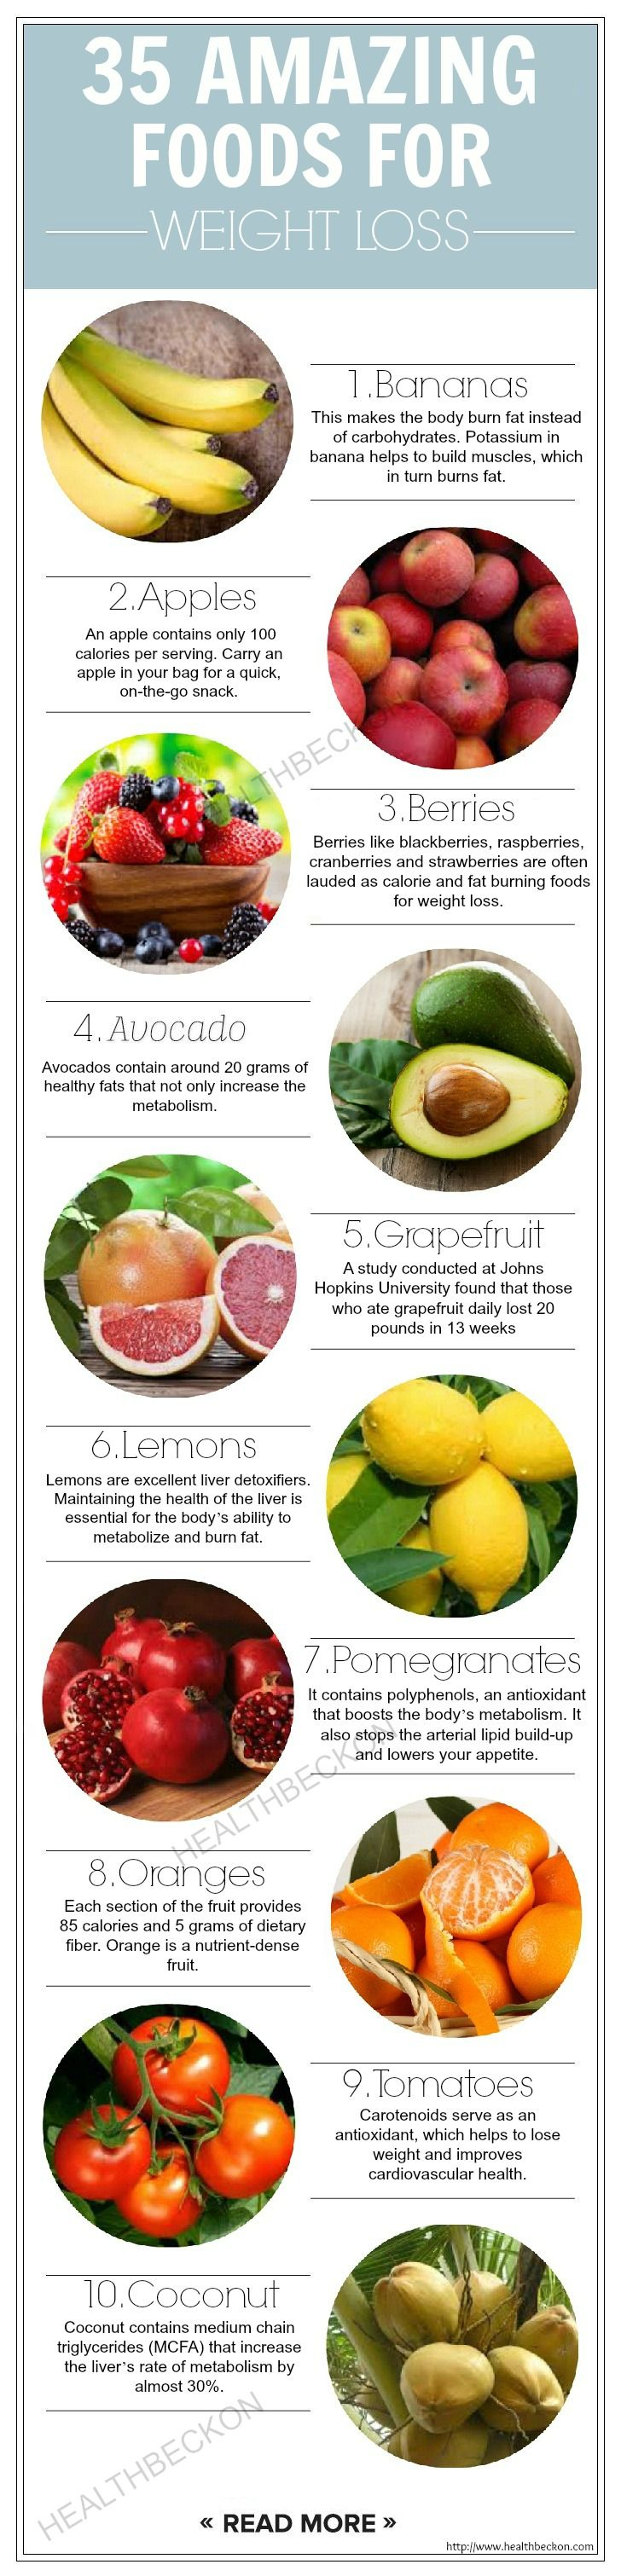 30 Amazing Foods for Weight Loss: For healthy weight loss, people should try to consume low #calorie foods like fruits, #vegetables and whole grains. #purefood | for more : www.purefoodcompany.com